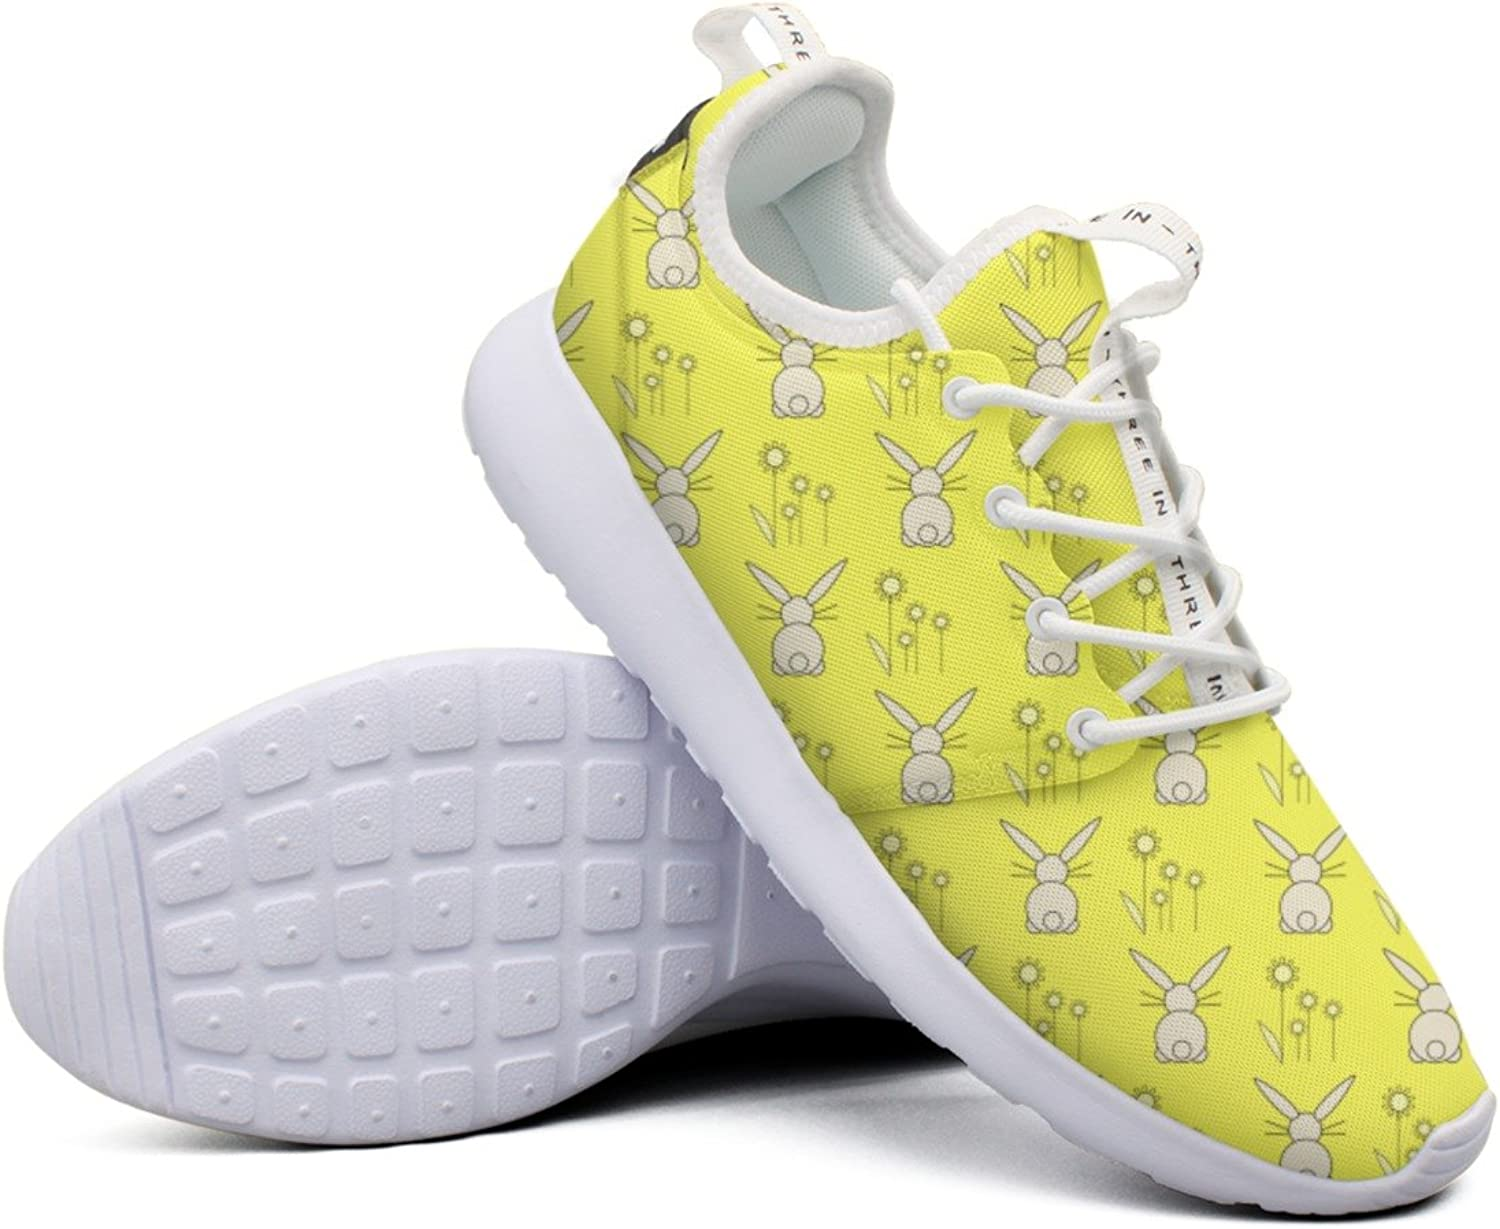 Pretty Women The Happy Bunny Club colorful Camping Climbing Fashion Running shoes